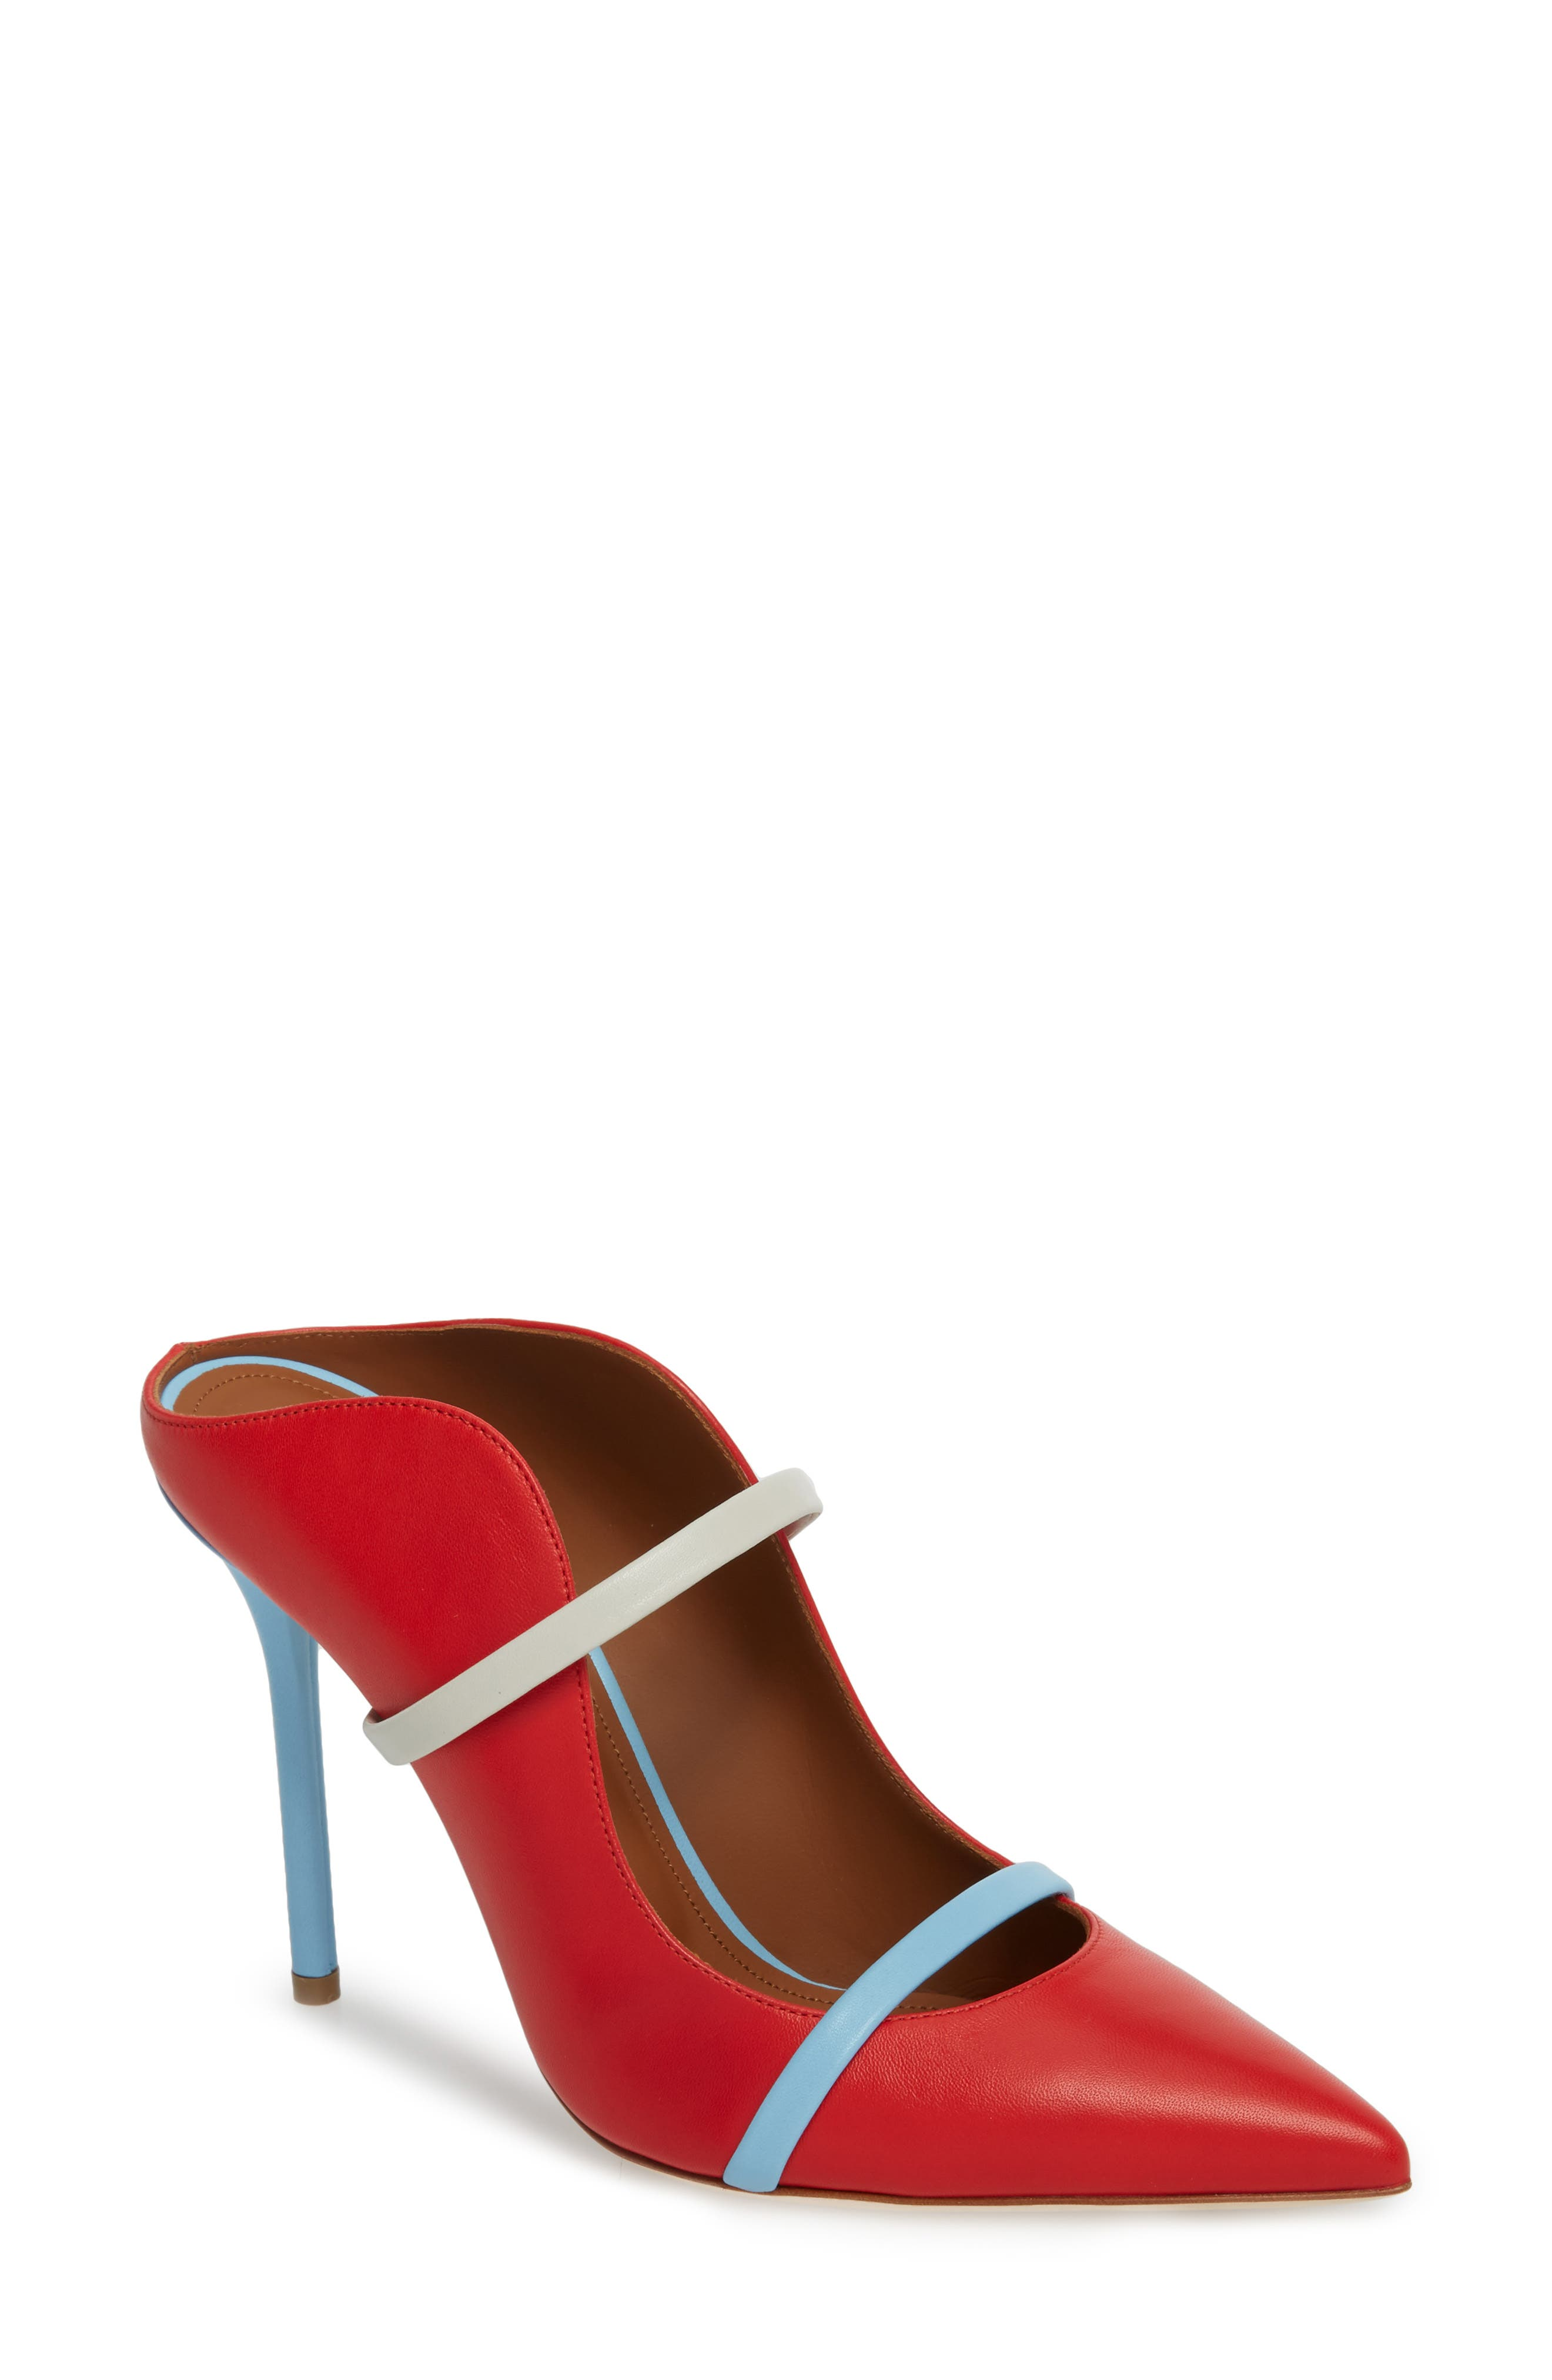 Maureen Double Band Mule,                         Main,                         color, Red/ Powder Blue